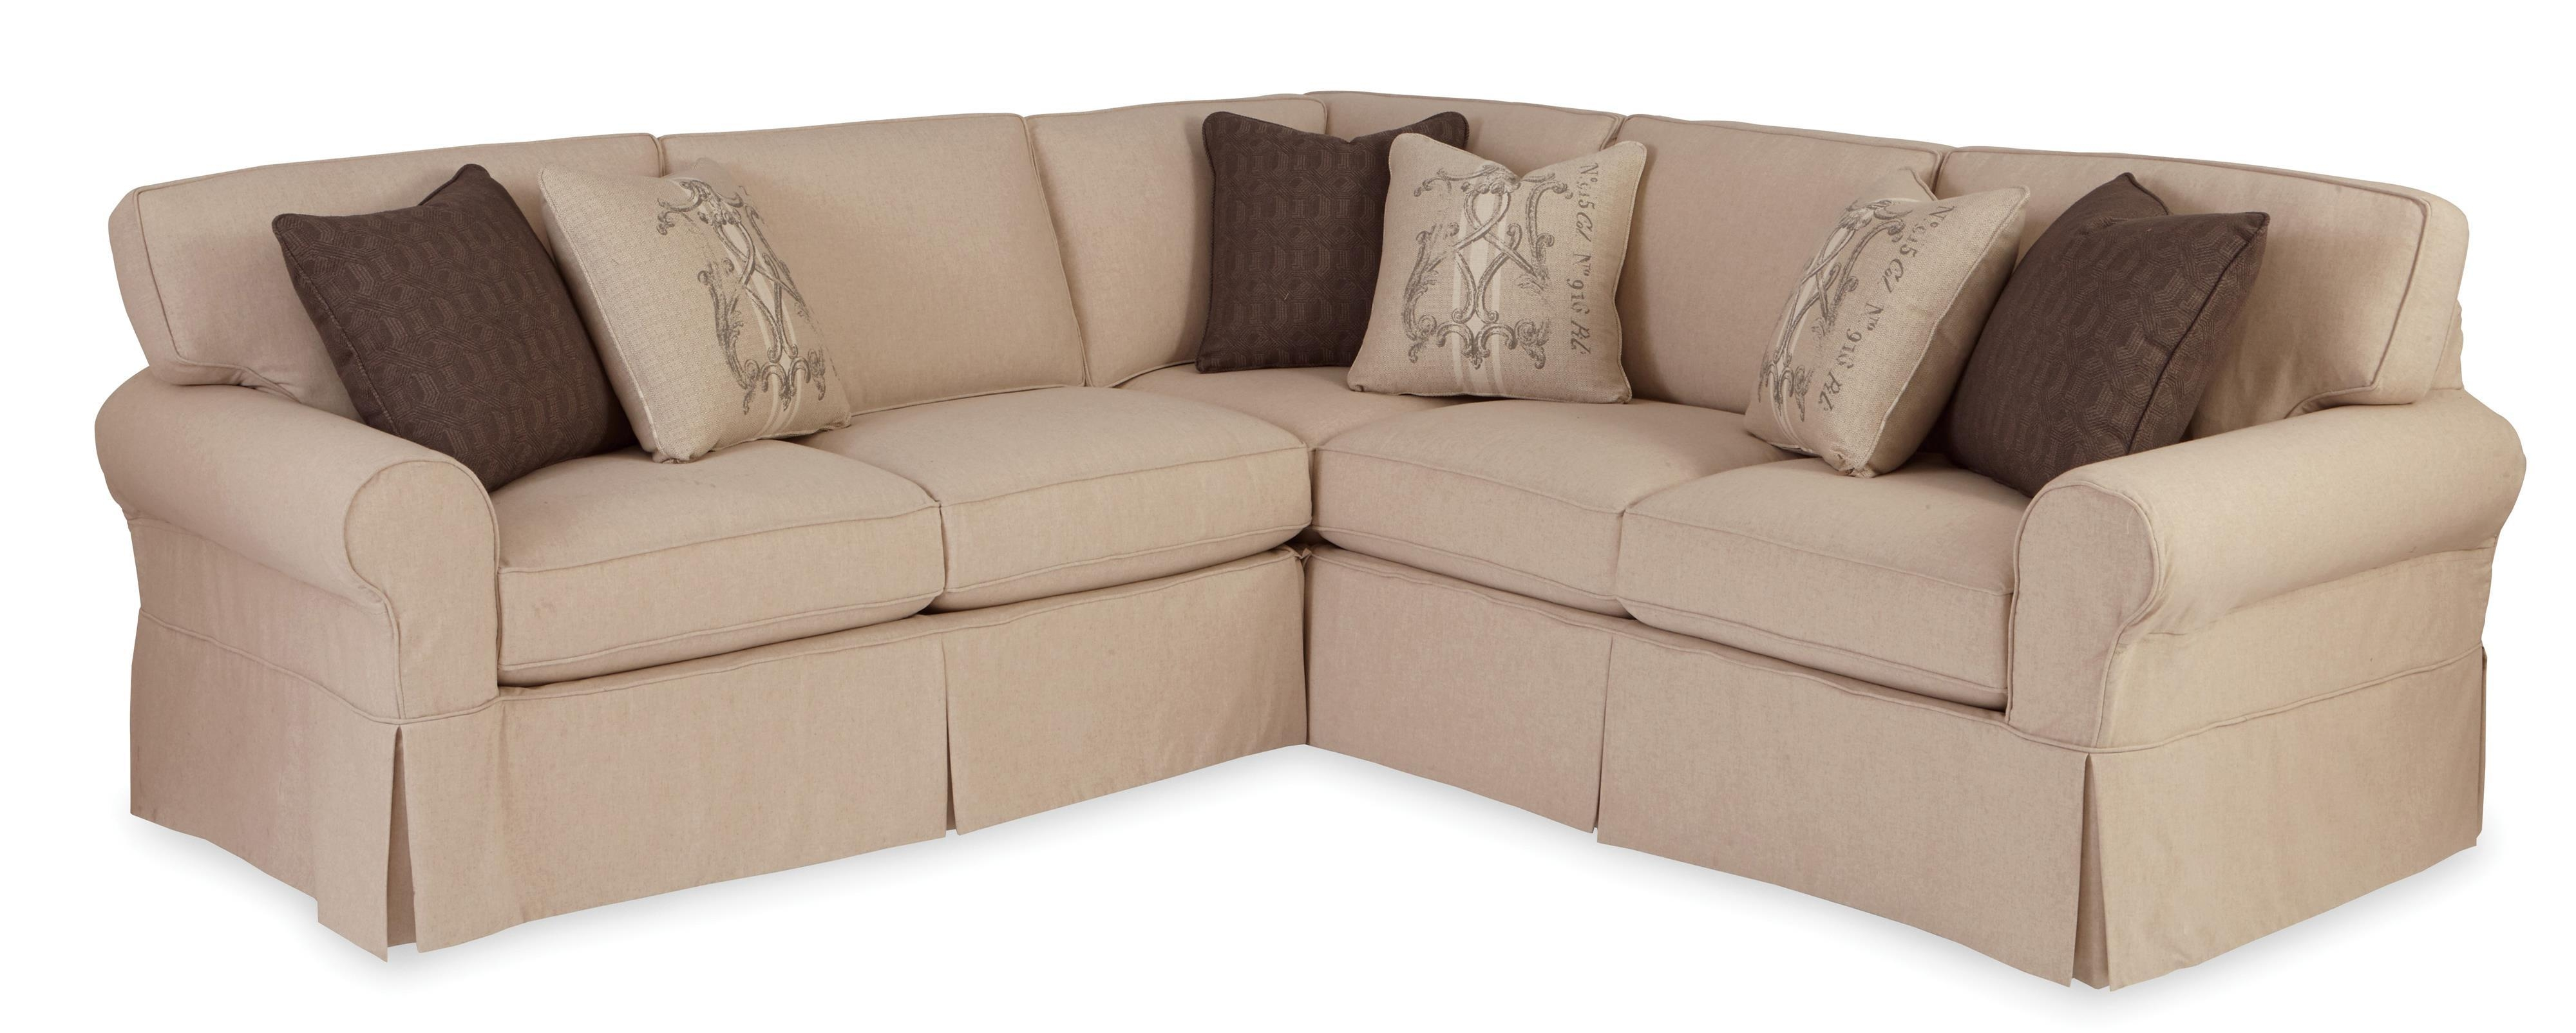 Furniture: Couch Covers At Walmart To Make Your Furniture Stylish With Regard To Sofas Cover For Sectional Sofas (View 15 of 20)